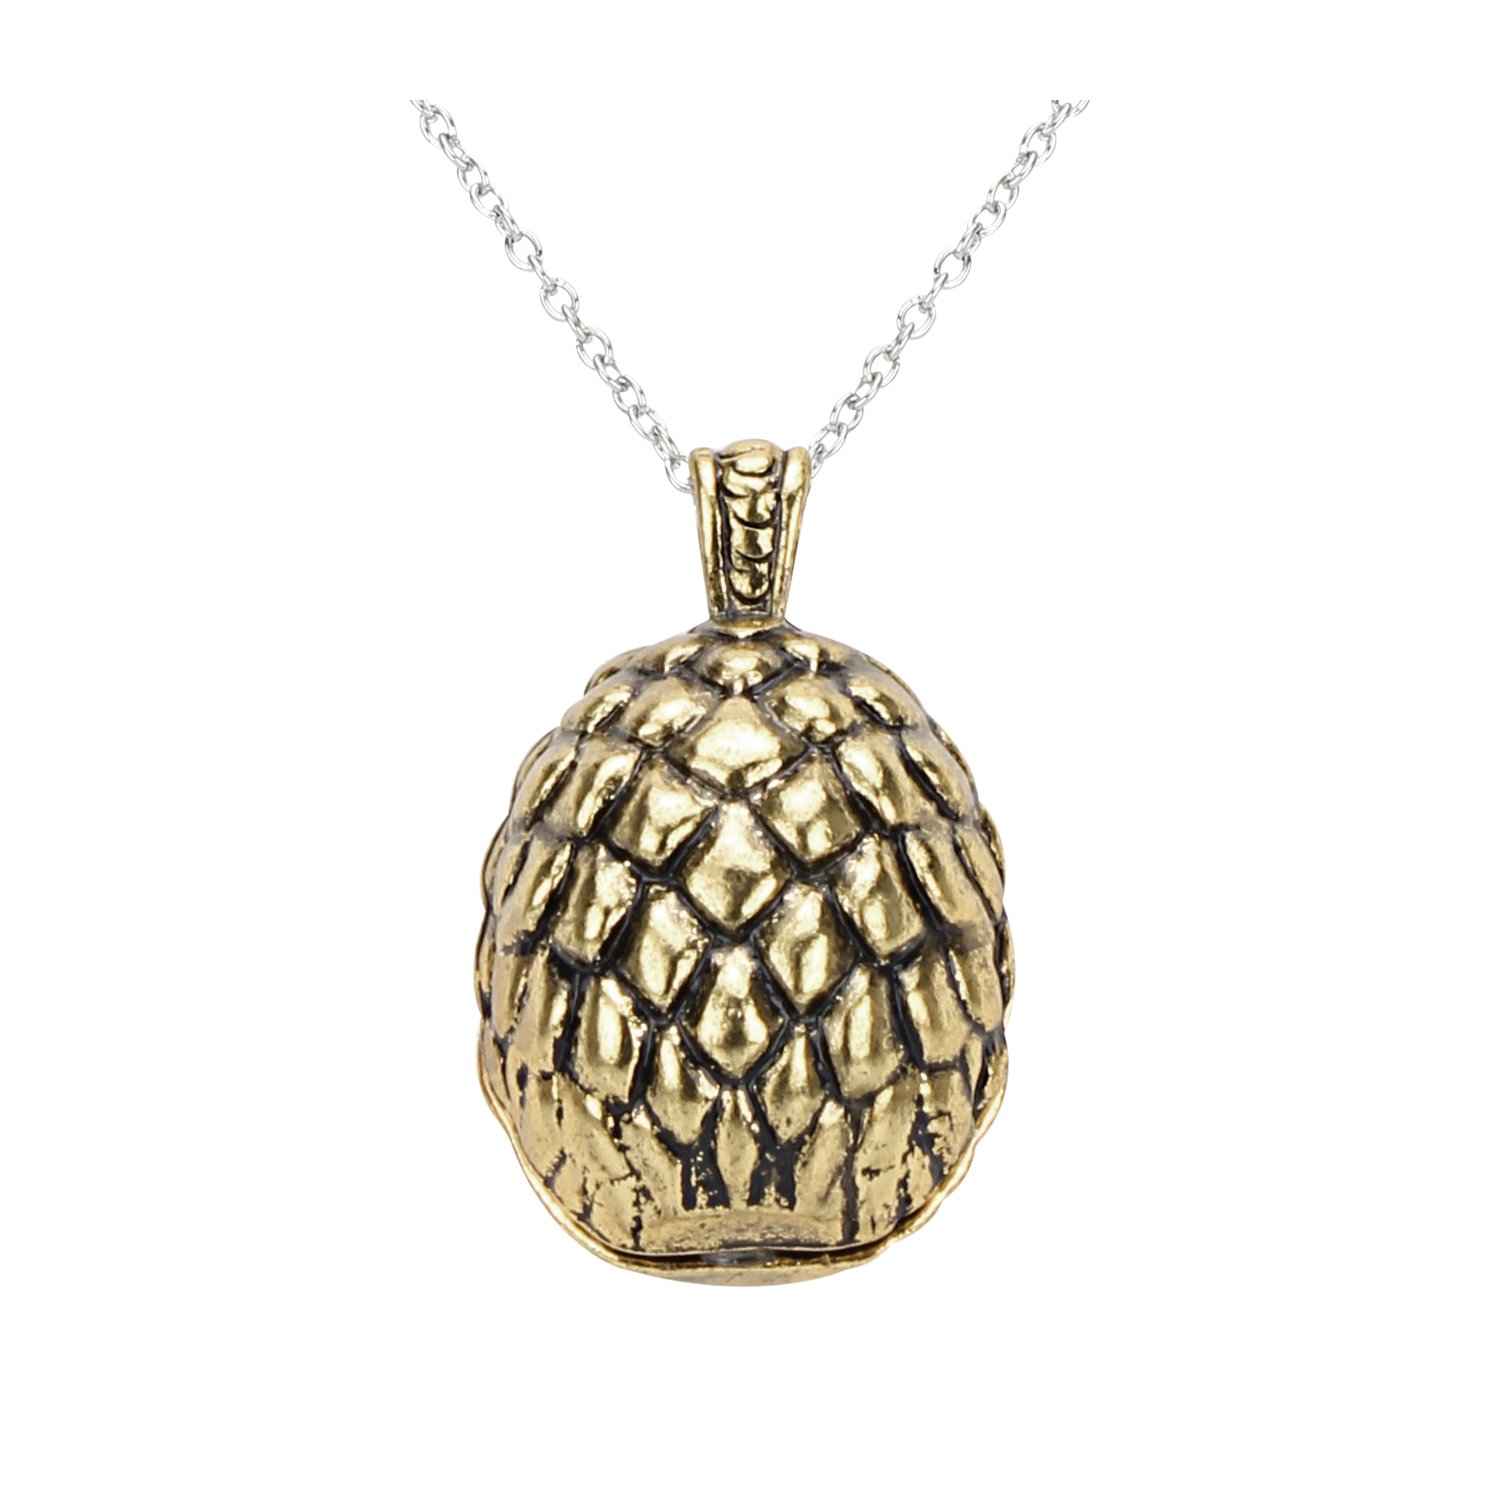 Accessorisingg Game of Thrones Inspired Collection of Fashion Jewelry 24 Varients